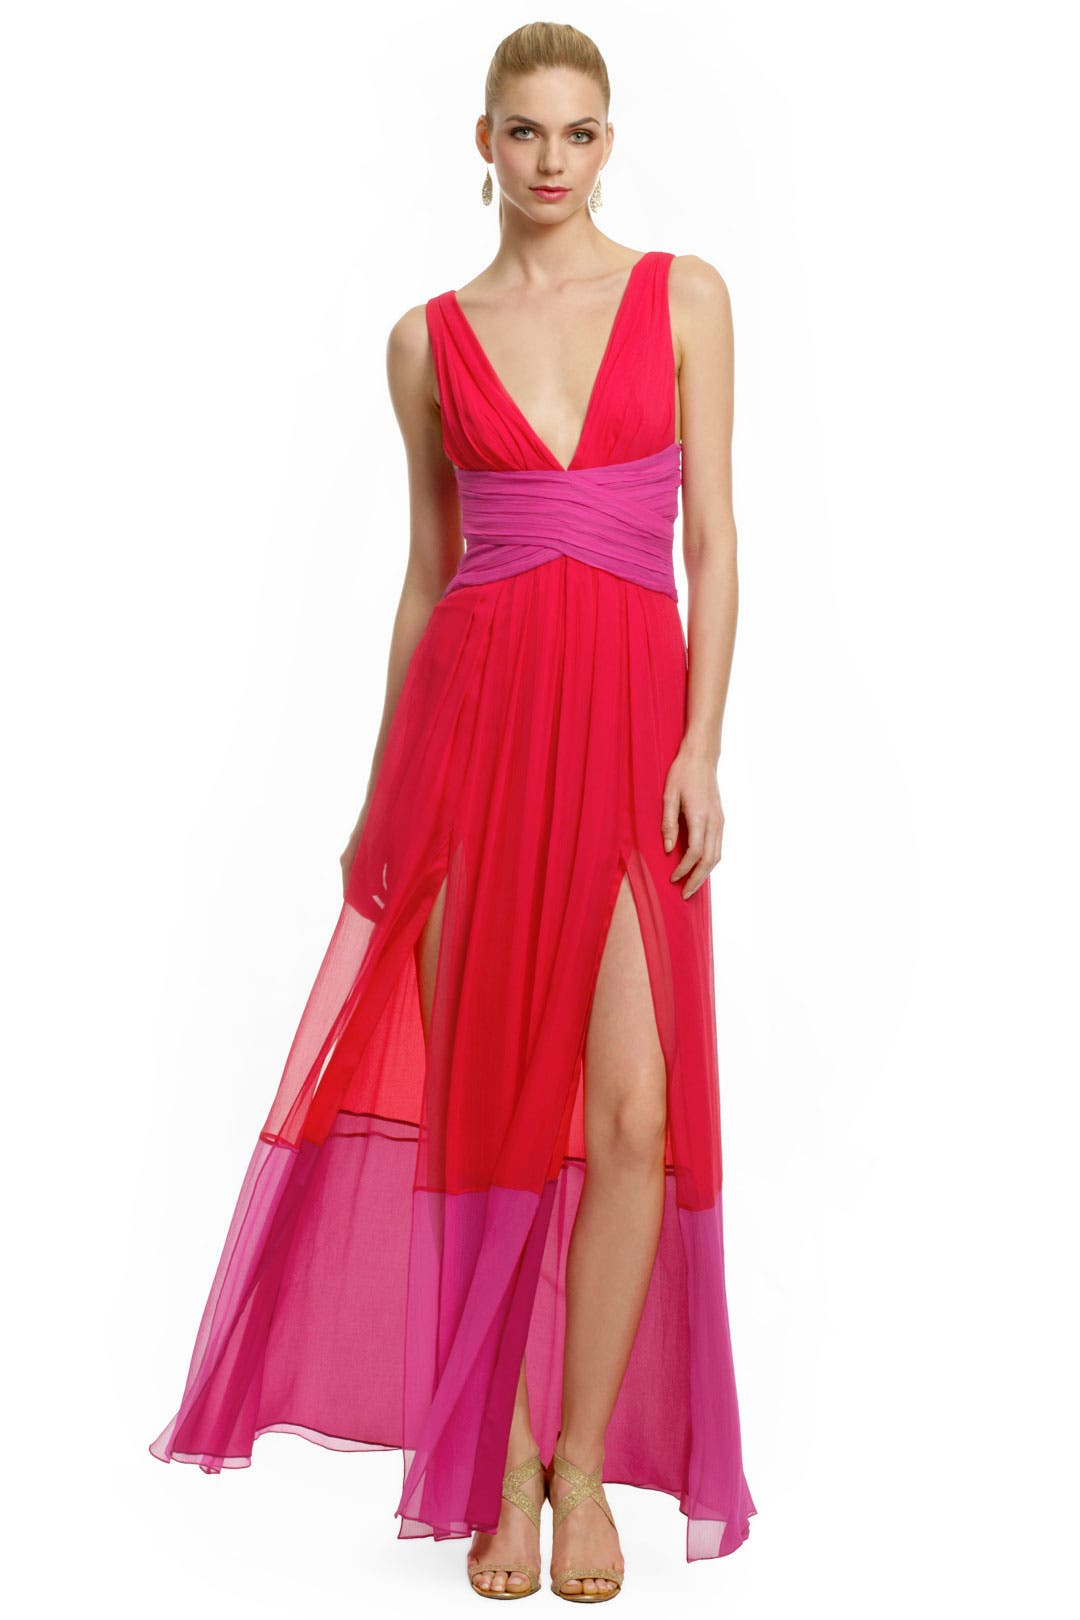 Sweet Tooth Gown by BCBGMAXAZRIA